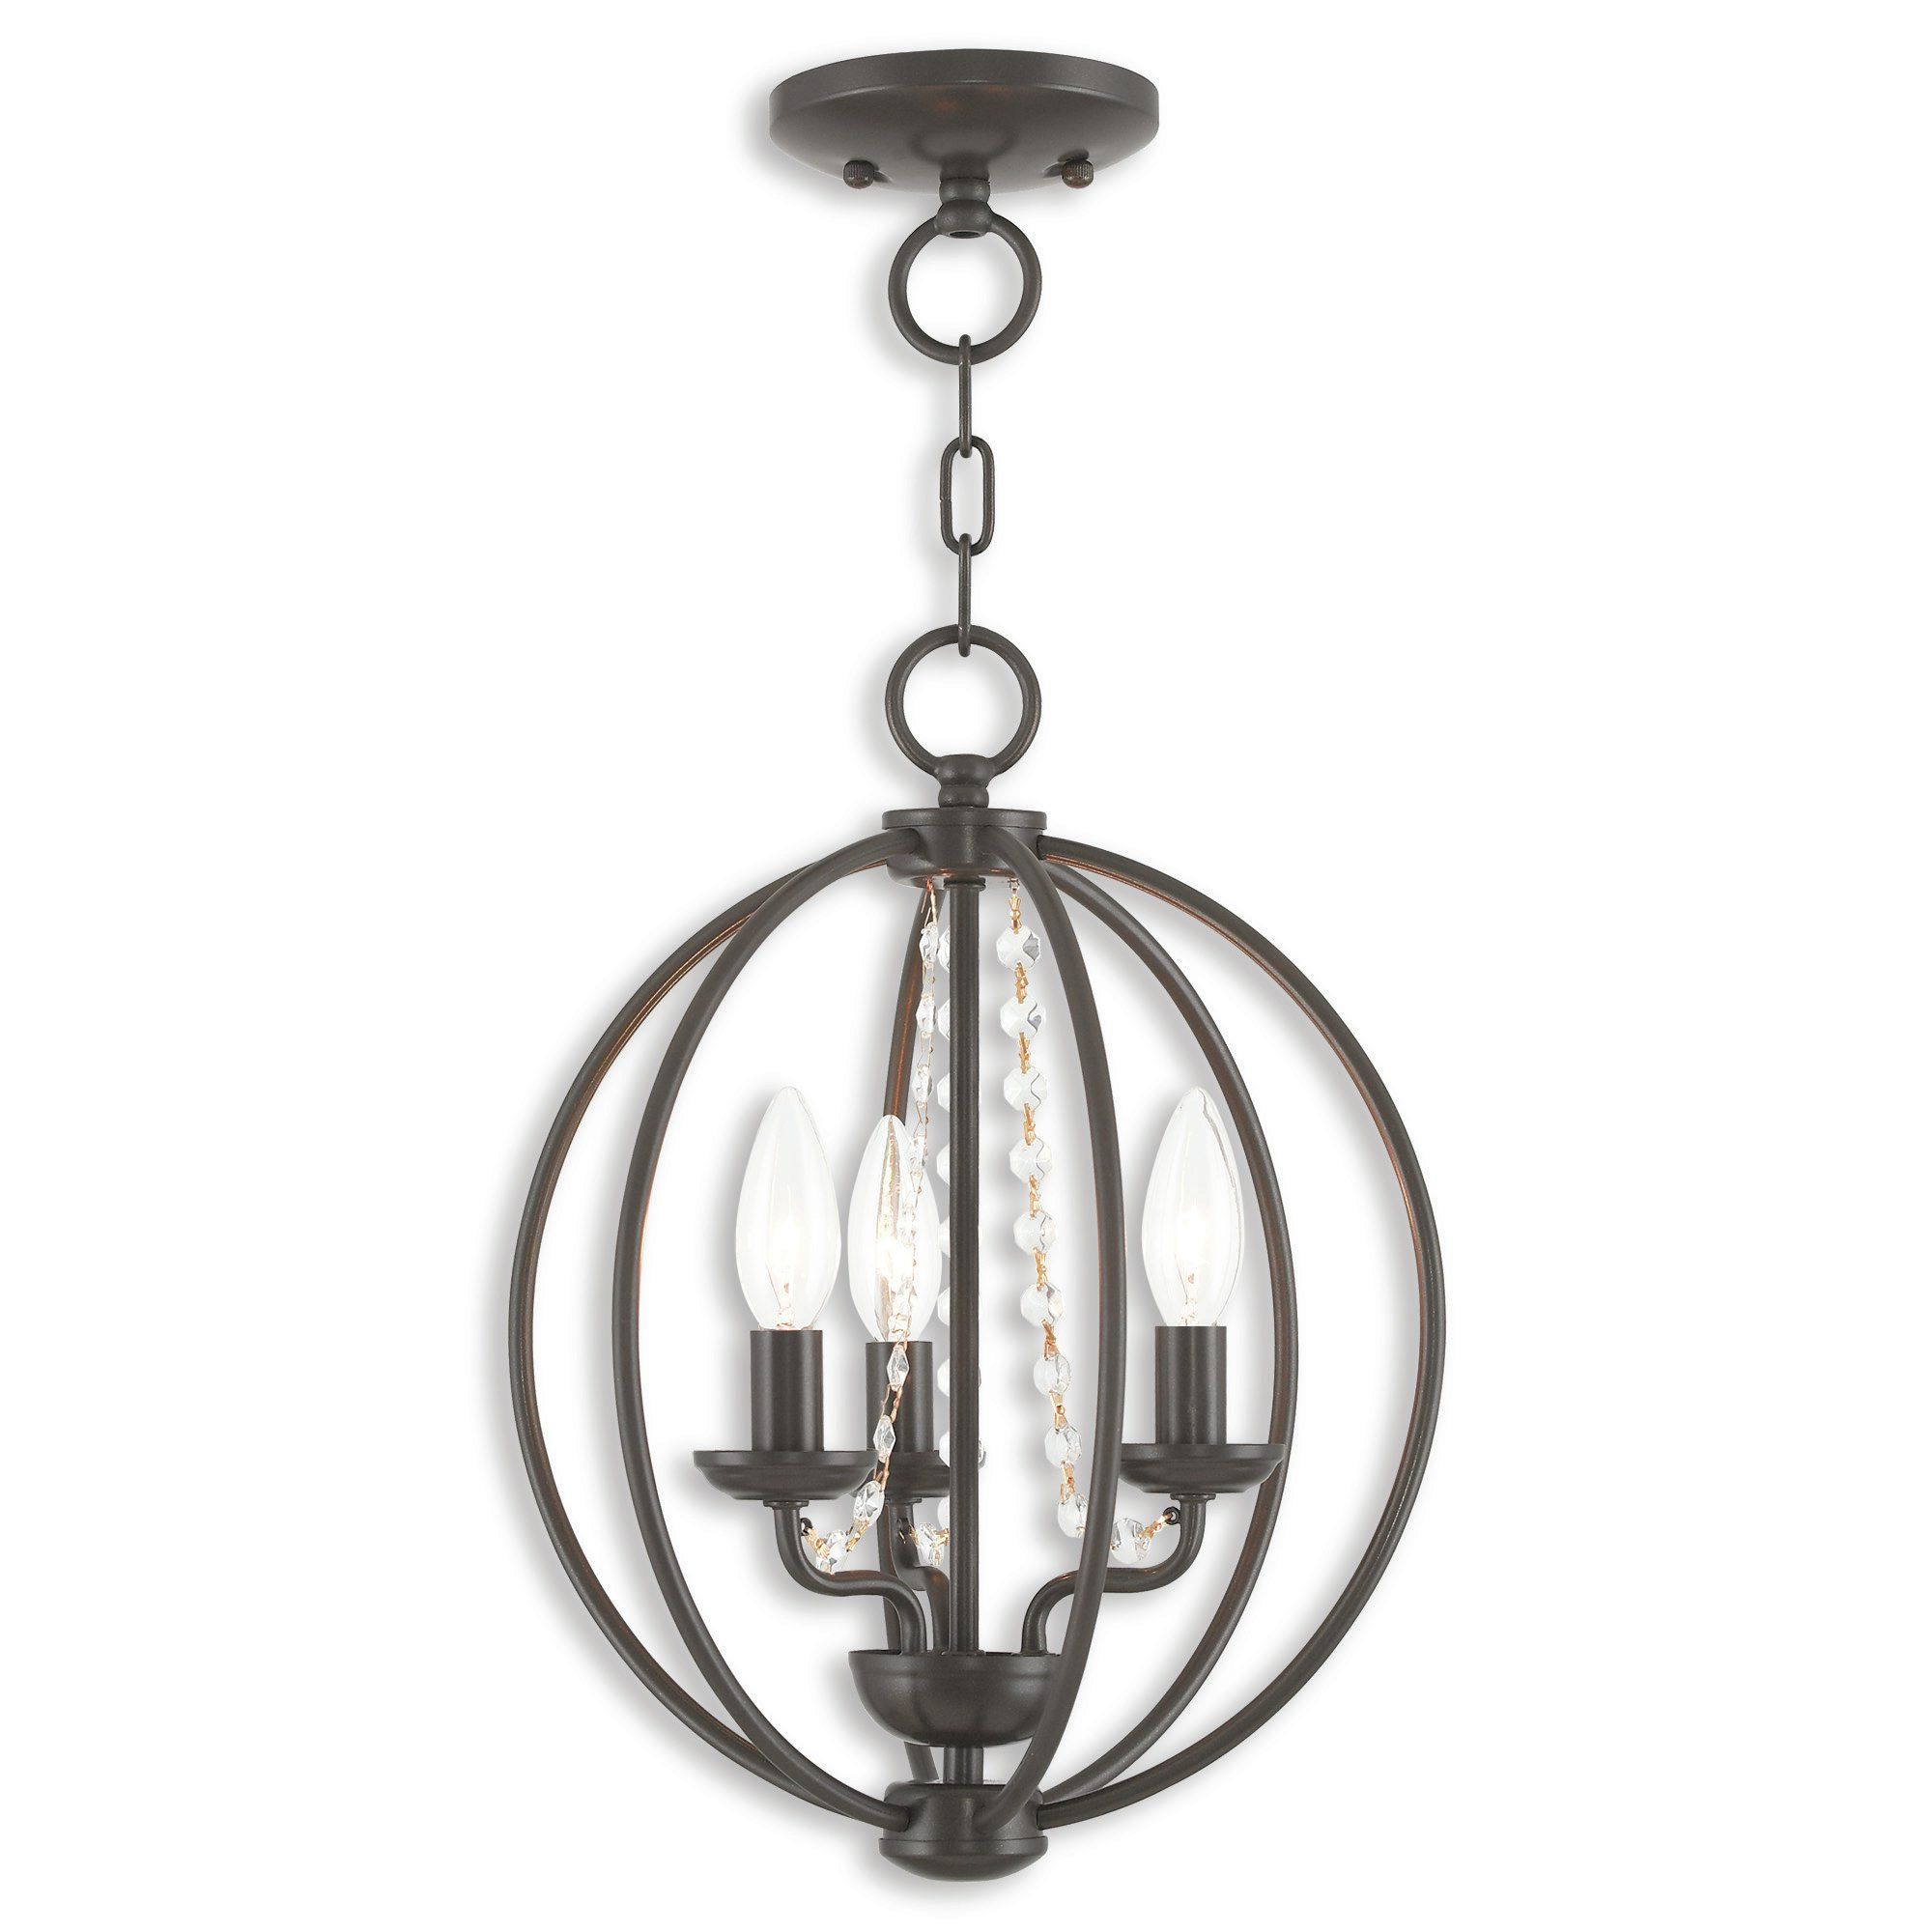 2019 Dirksen 3 Light Single Cylinder Chandeliers Pertaining To Artus 3 Light Globe Chandelier (View 4 of 25)